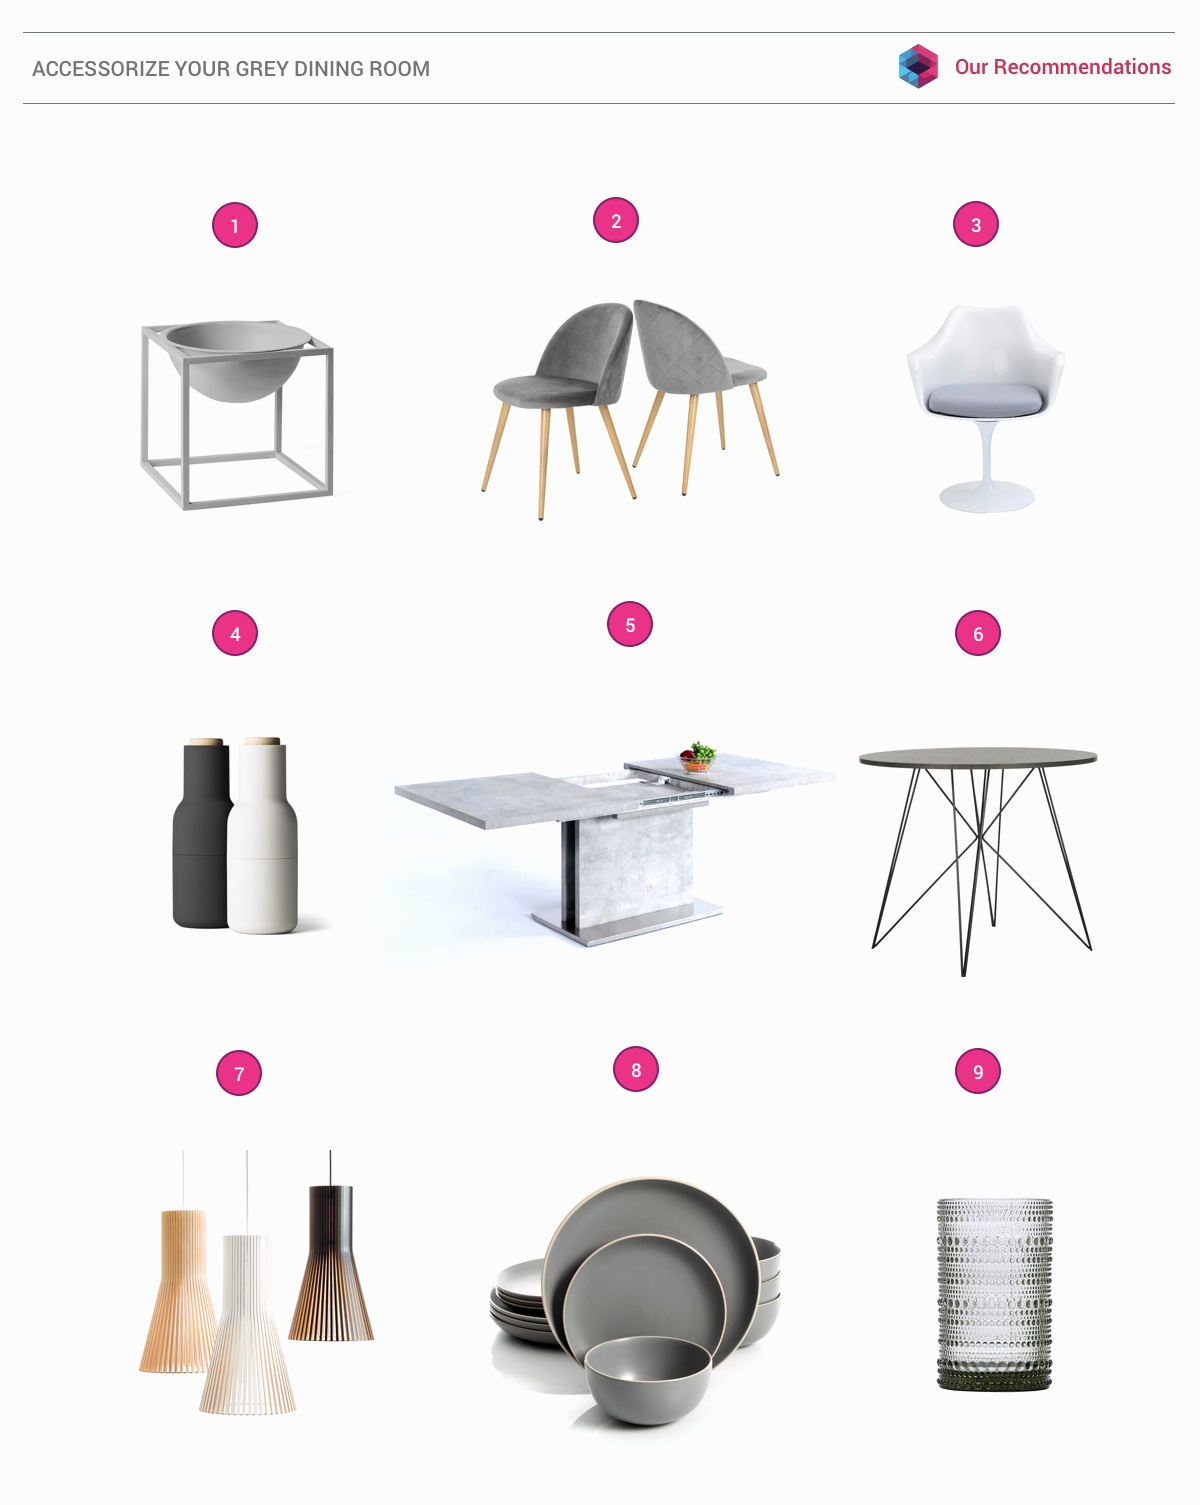 grey-dining-room-furniture-accessories